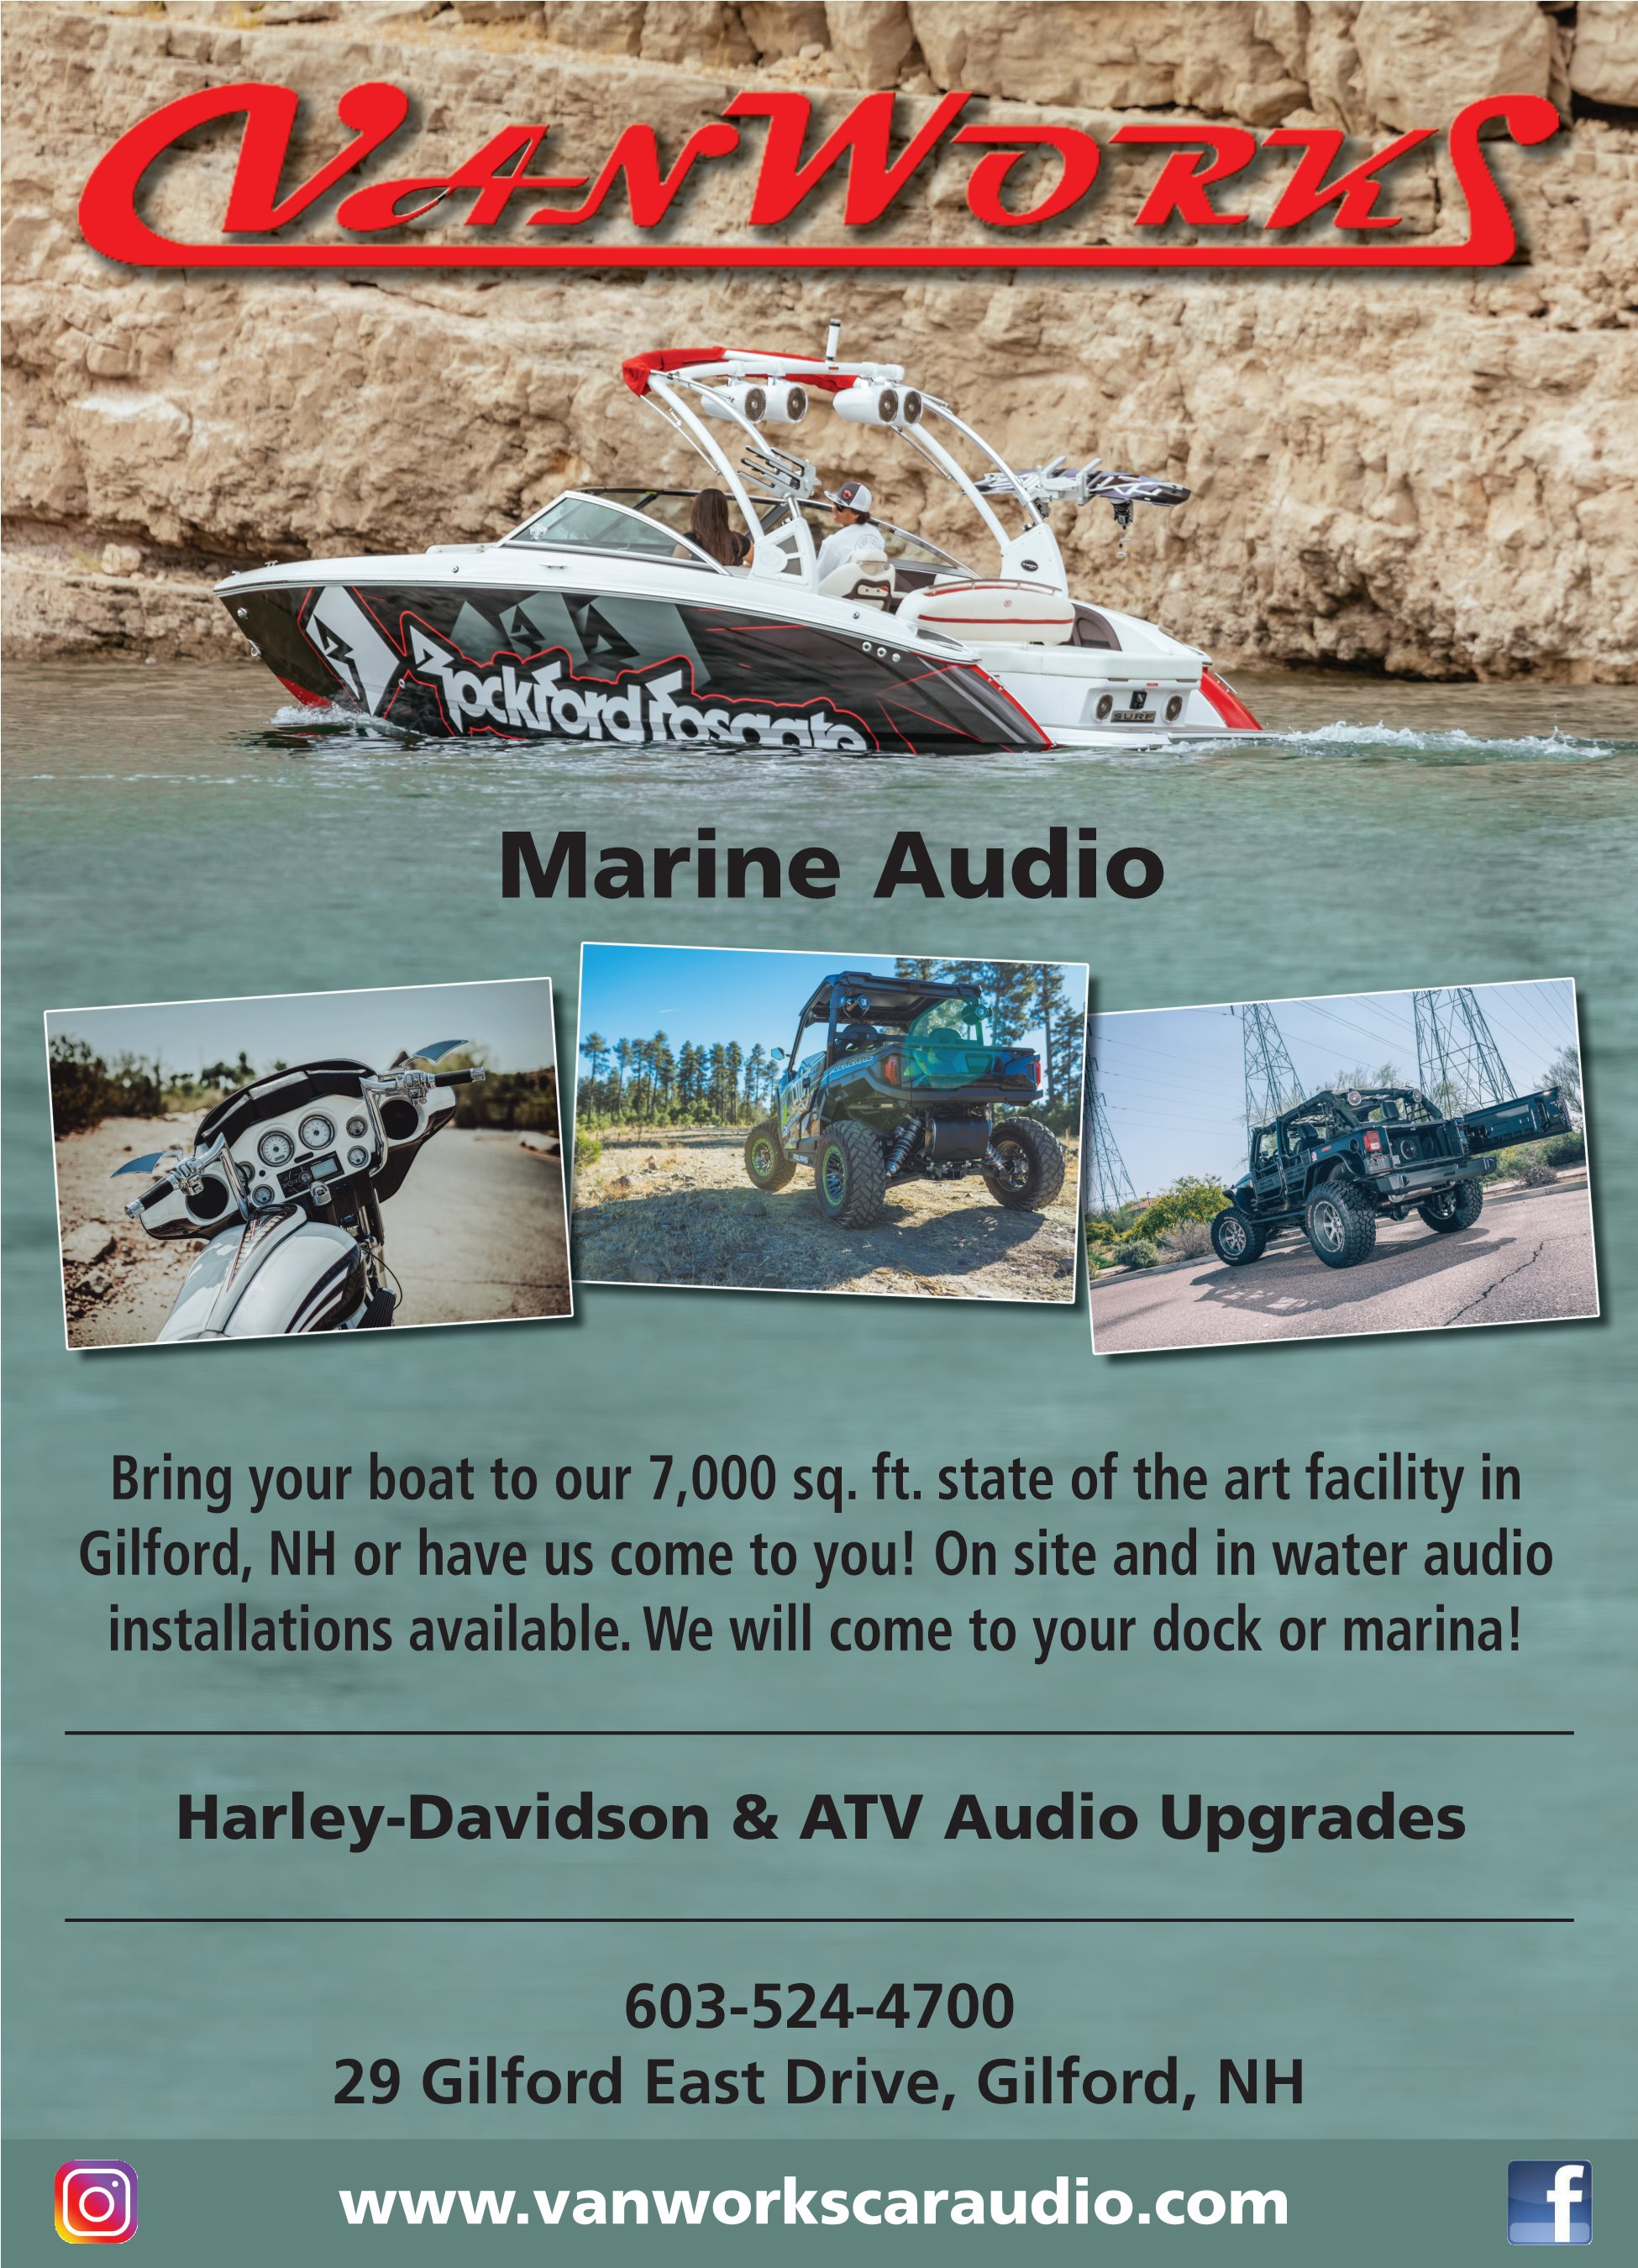 Want to get your summer toys ready for next year? - Don't miss out on precious good weather when it is upon us. We can get all your toys ready while the snow is falling in our newly expanded 7,000 square foot heated shop! We have many options available when it comes to car, boat, motorcycle, RV and ATV audio. Enjoy your time doing what you love while having the right system for the best sound!